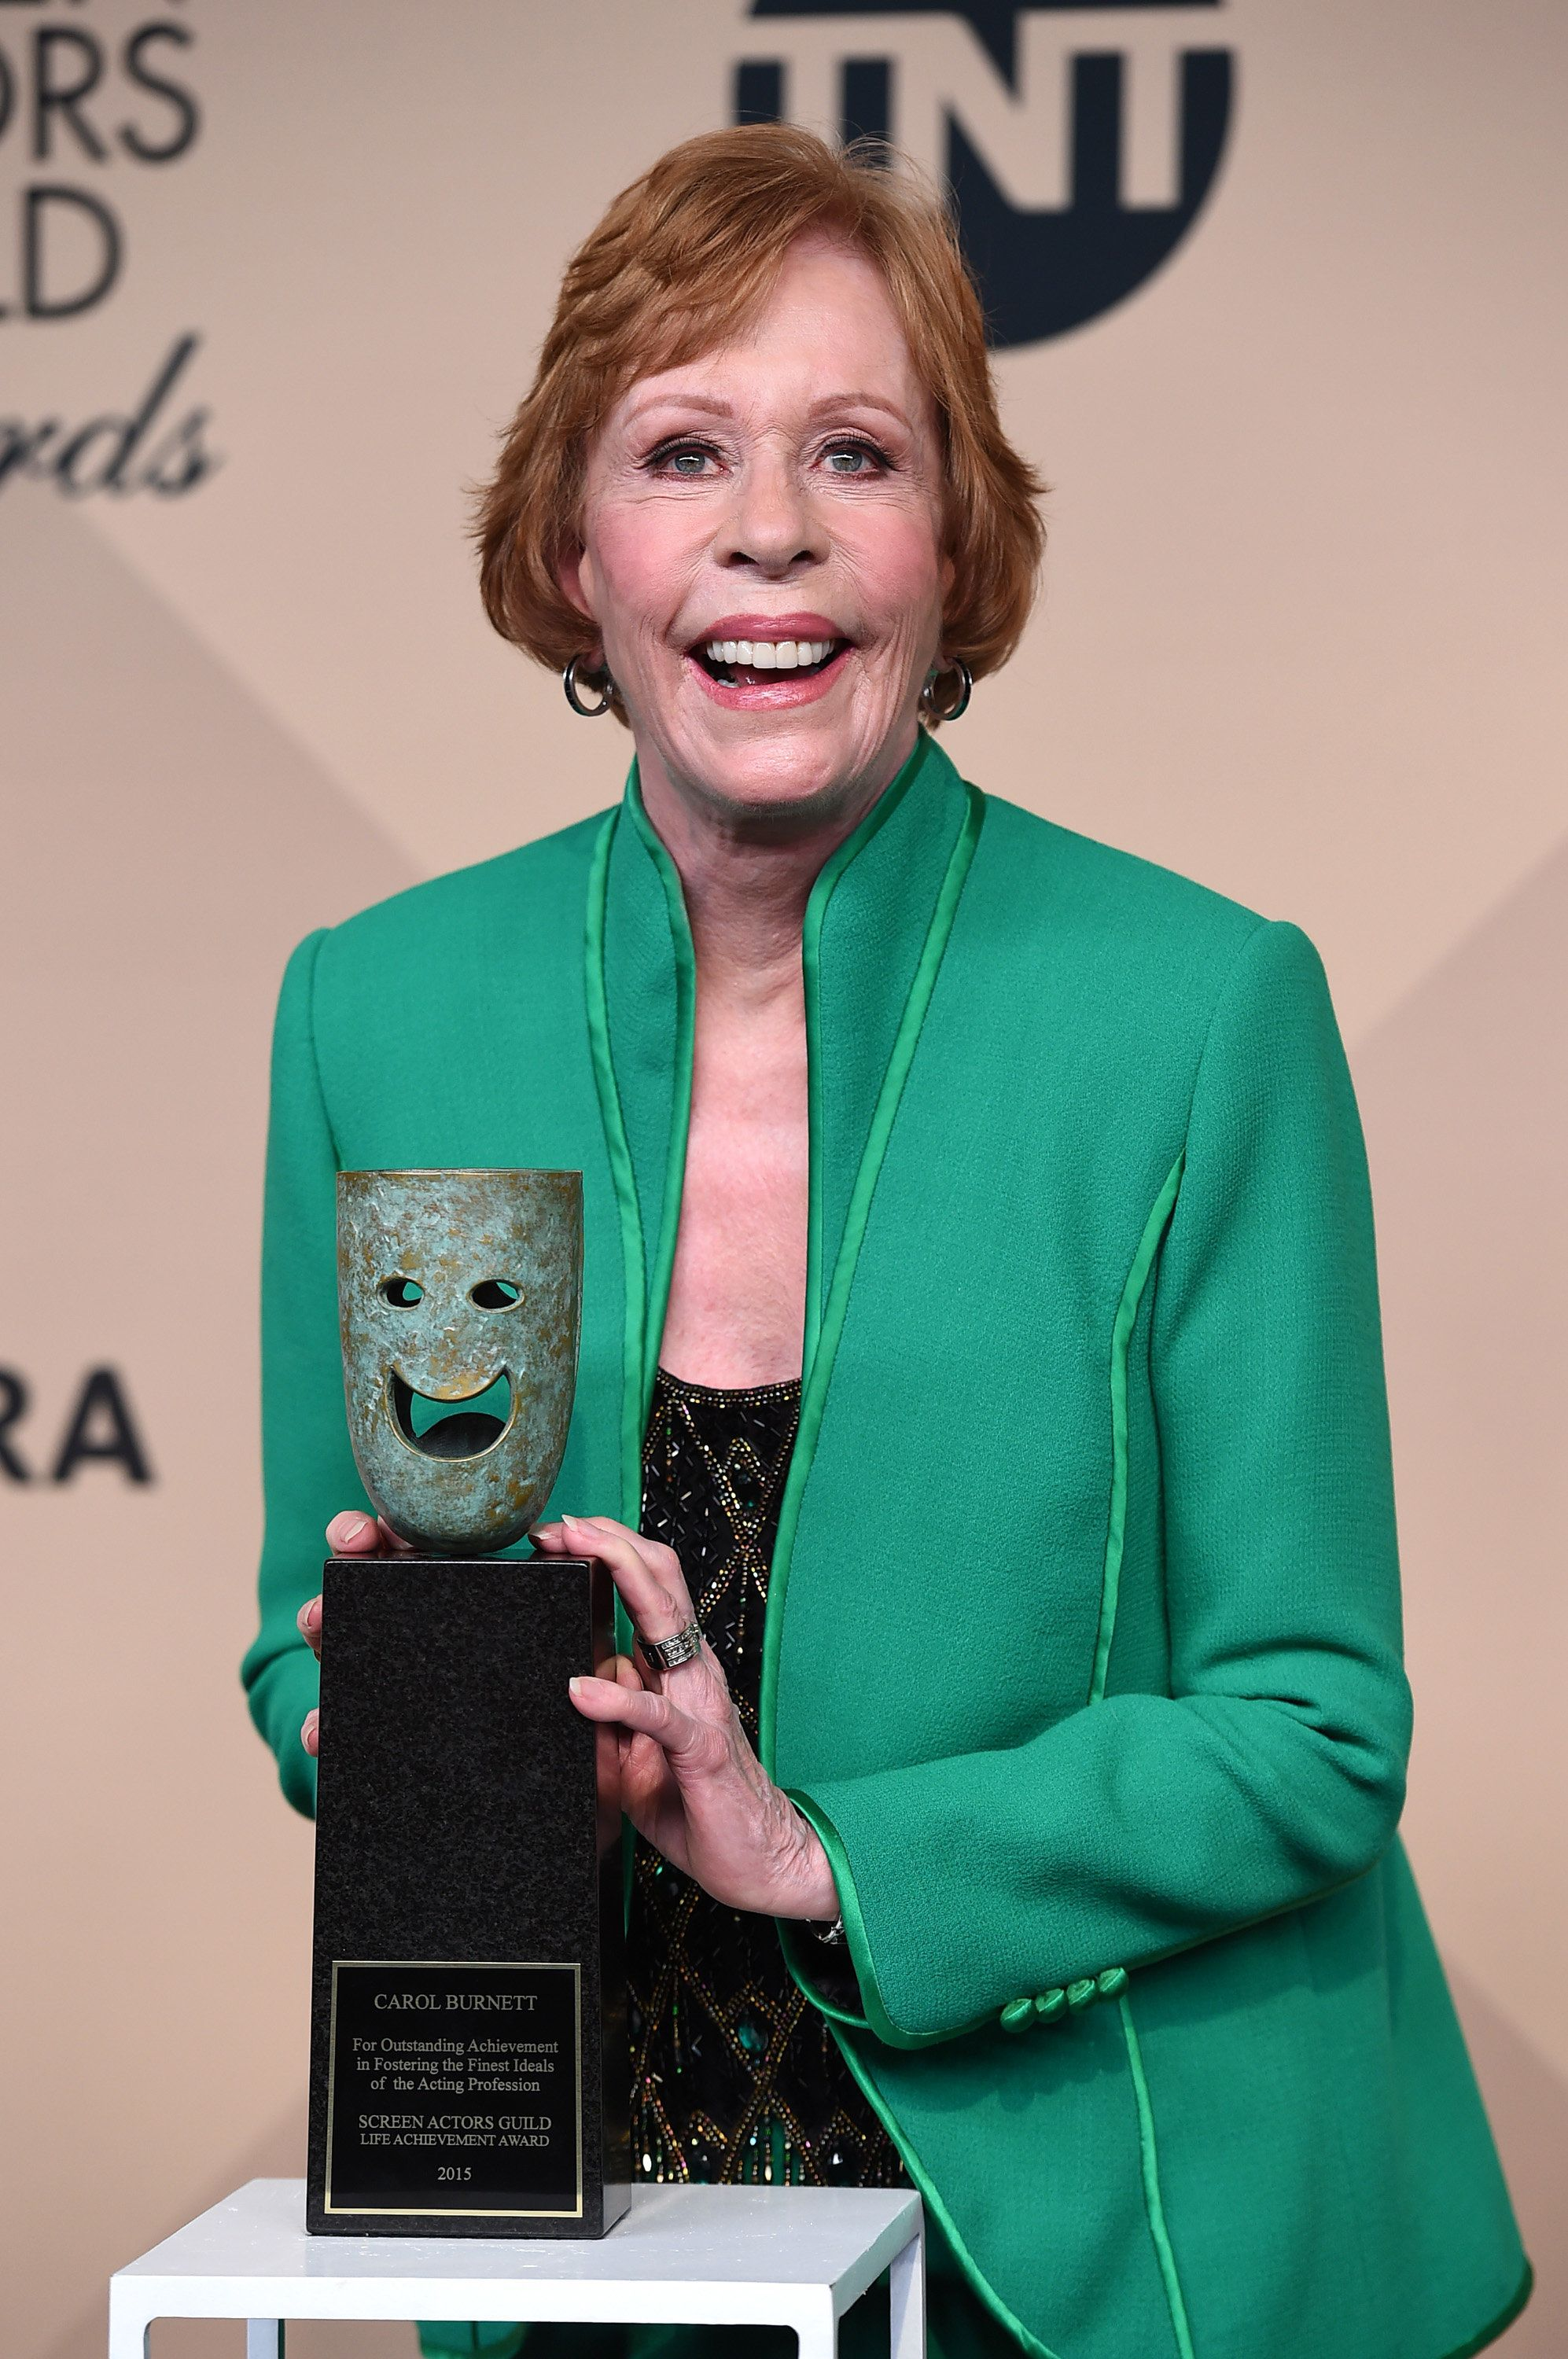 Carol Burnett poses in the press room with the the Screen Actors Guild life achievement award at the 22nd annual Screen Actors Guild Awards at the Shrine Auditorium & Expo Hall on Saturday, Jan. 30, 2016, in Los Angeles. (Photo by Jordan Strauss/Invision/AP)